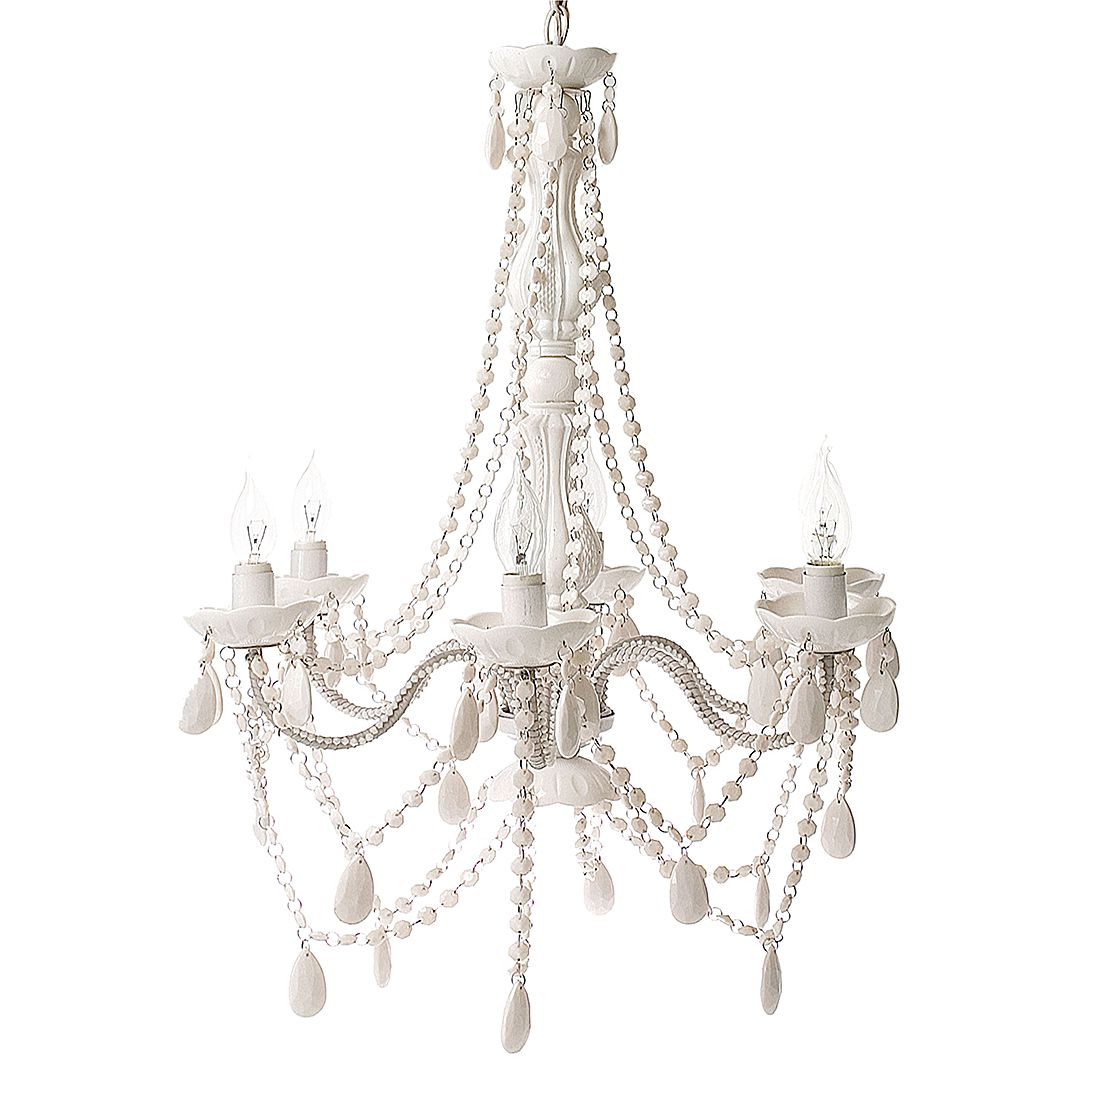 Leuchte Chandelier Gypsy  6 Arme  - Weiss, SILLY